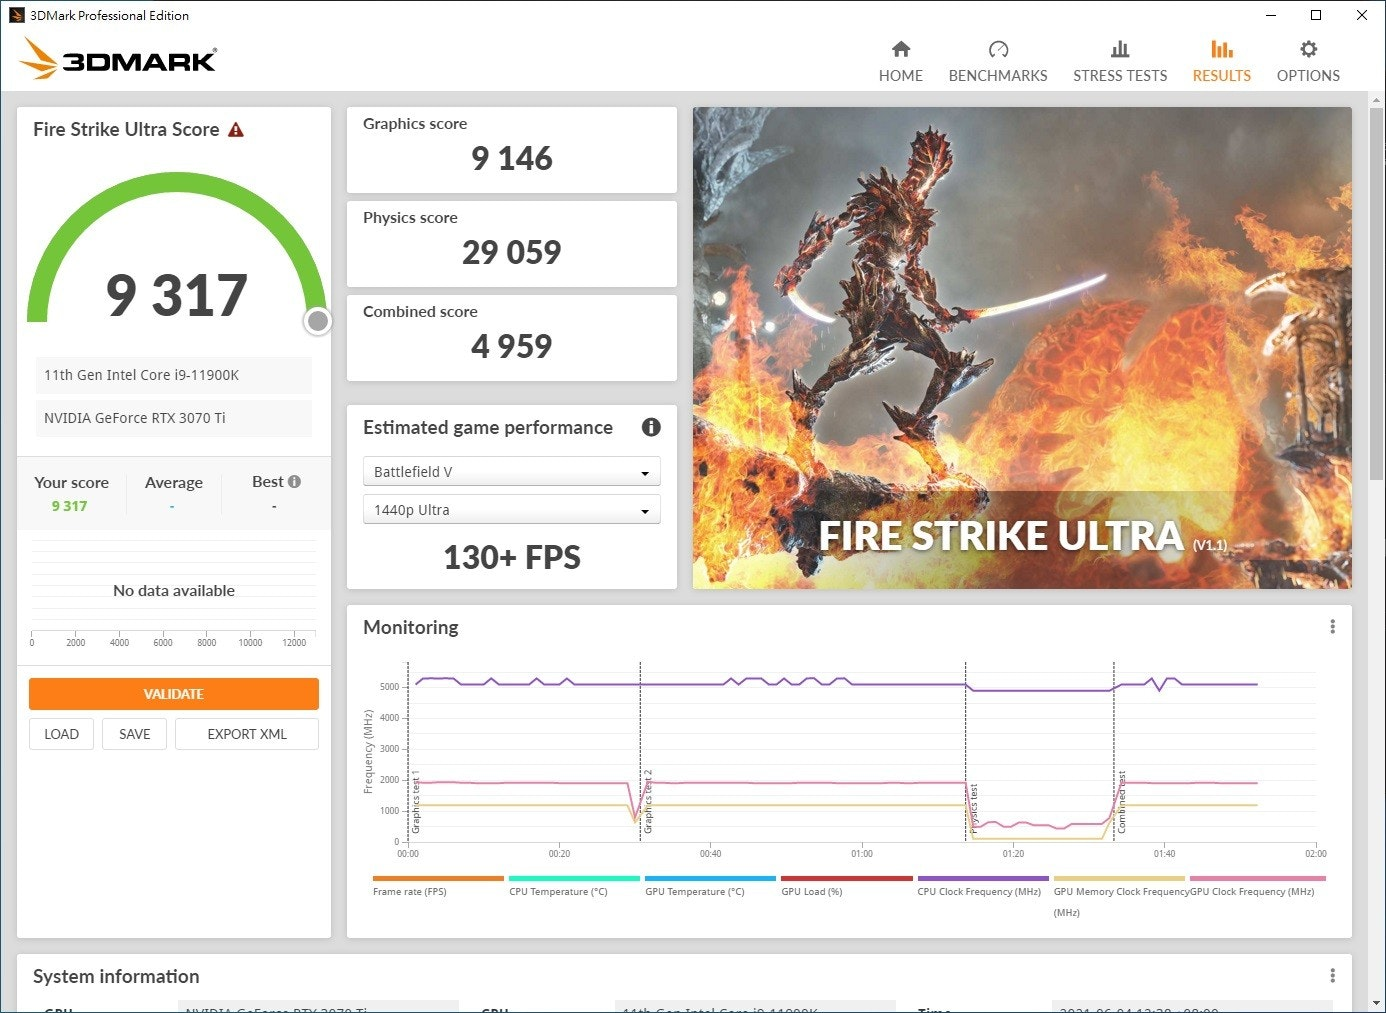 The photo mentioned 3DMark Professional Edition, 3DMARK, НОМЕ, including graphics card, NVIDIA GeForce RTX, benchmark test, 3DMark, graphics processing unit